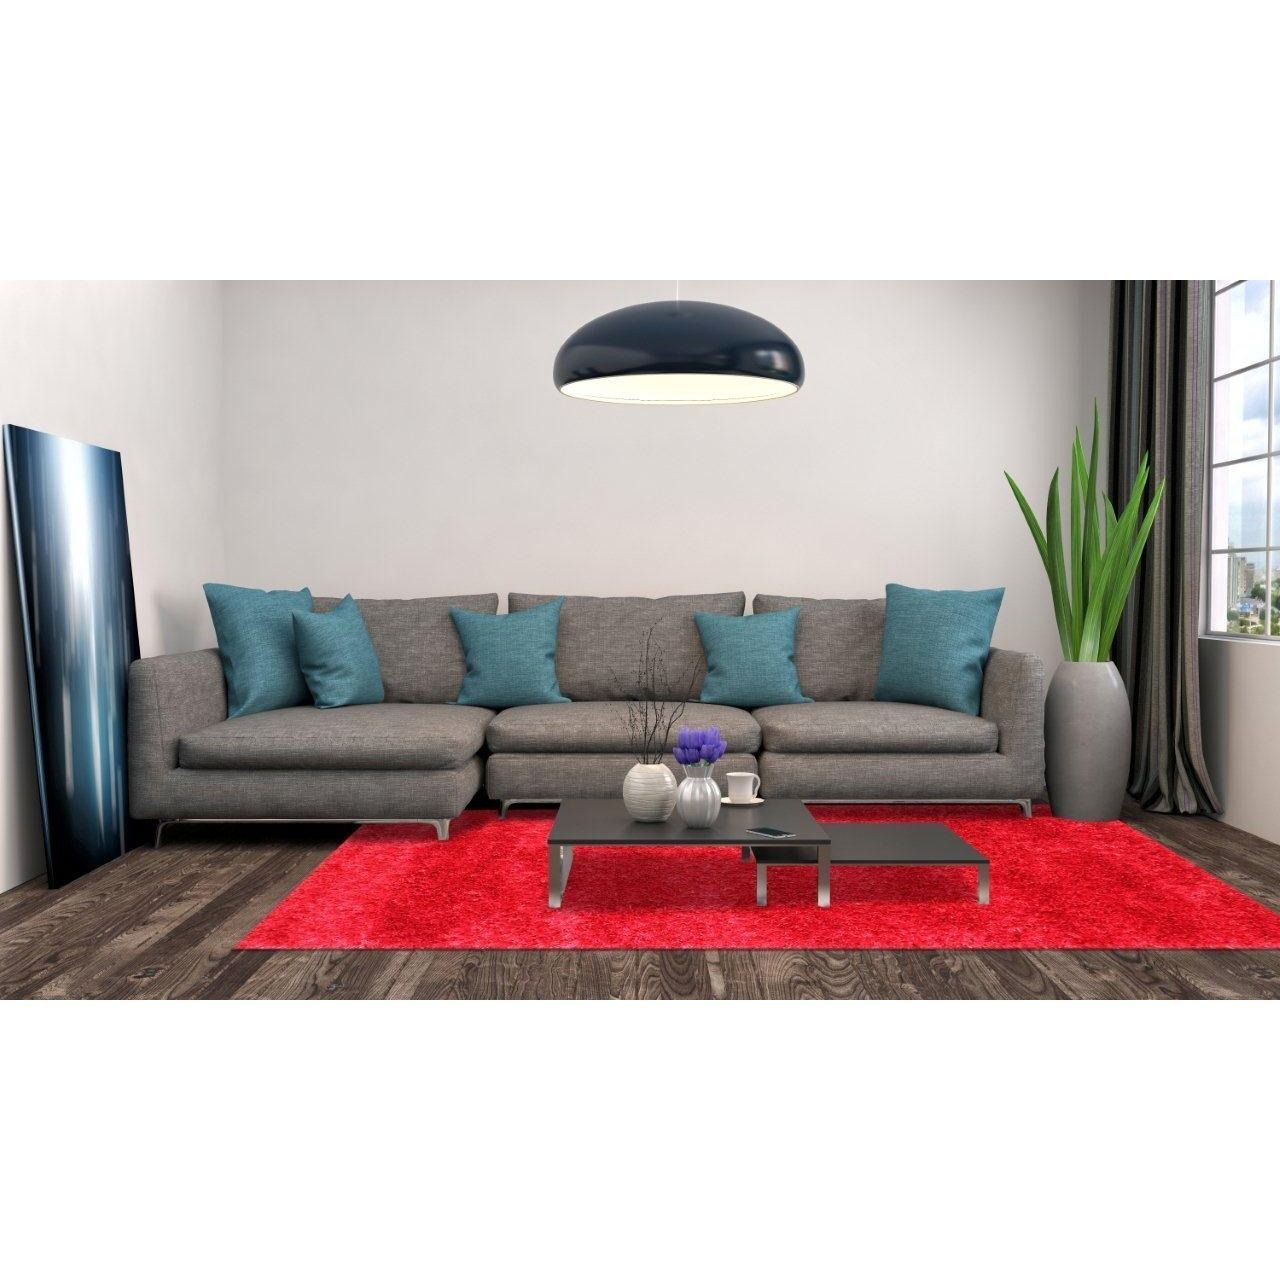 rug for living room size%0A The Alliyah Beautifully Handcrafted European Elegance Red Modern Shag Rug     u     x